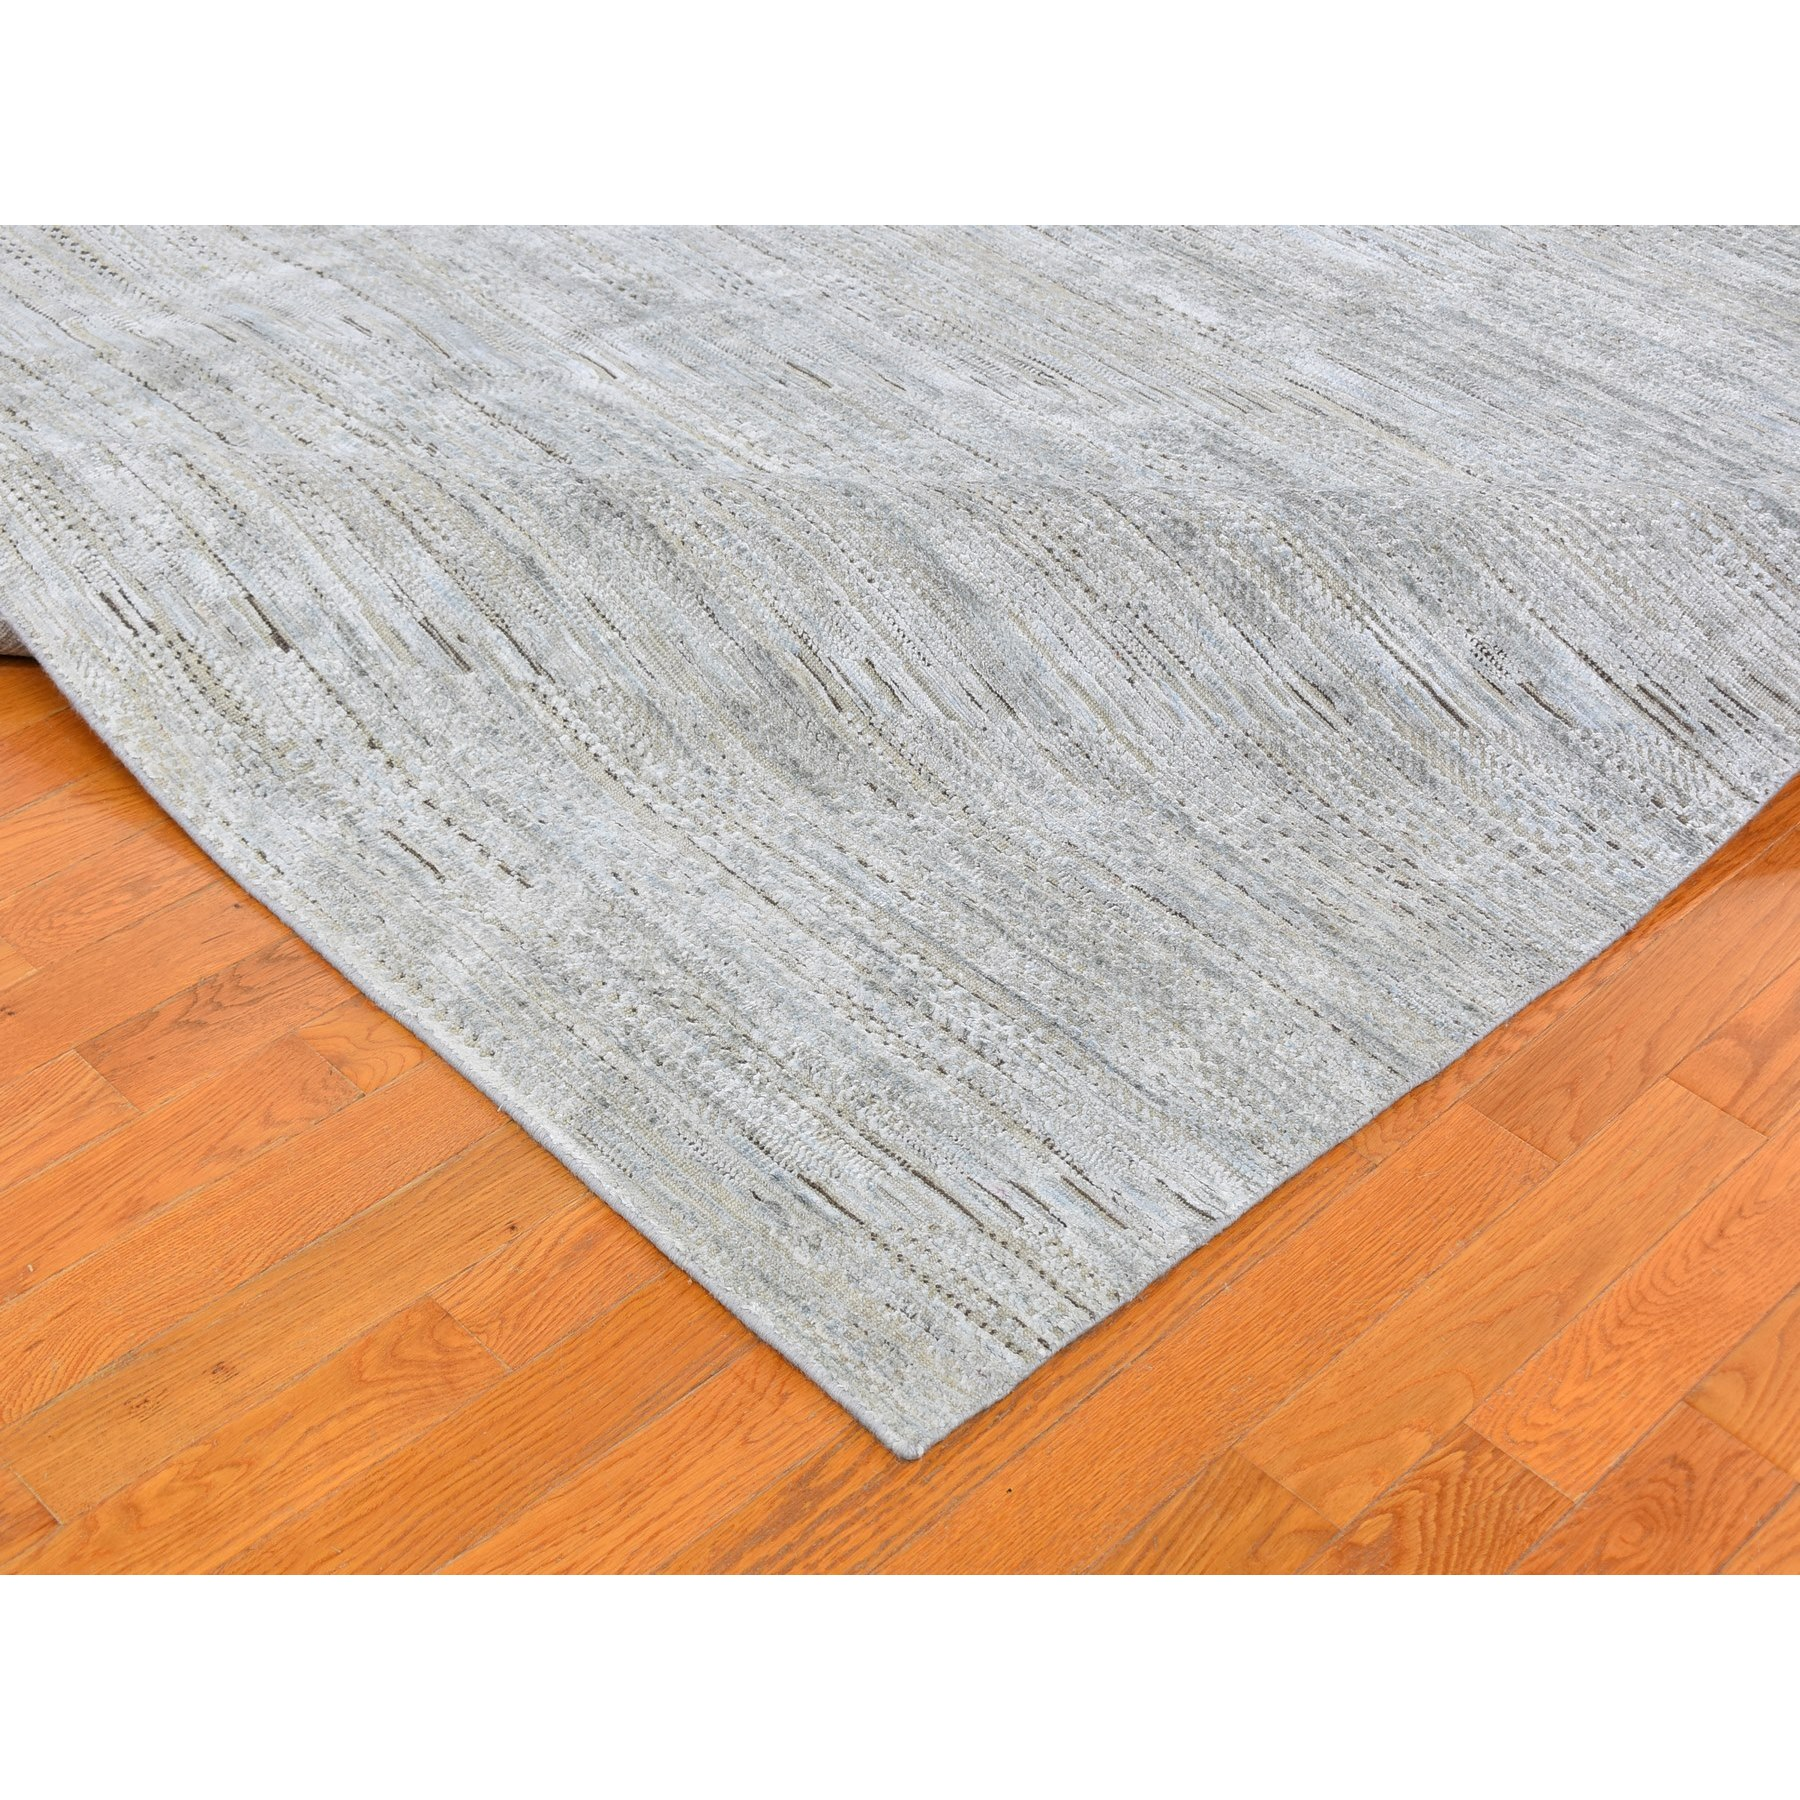 """9'9""""x14'1"""" Ivory Silk with Textured Wool Tone on Tone Serrated Hand Knotted Oriental Rug"""